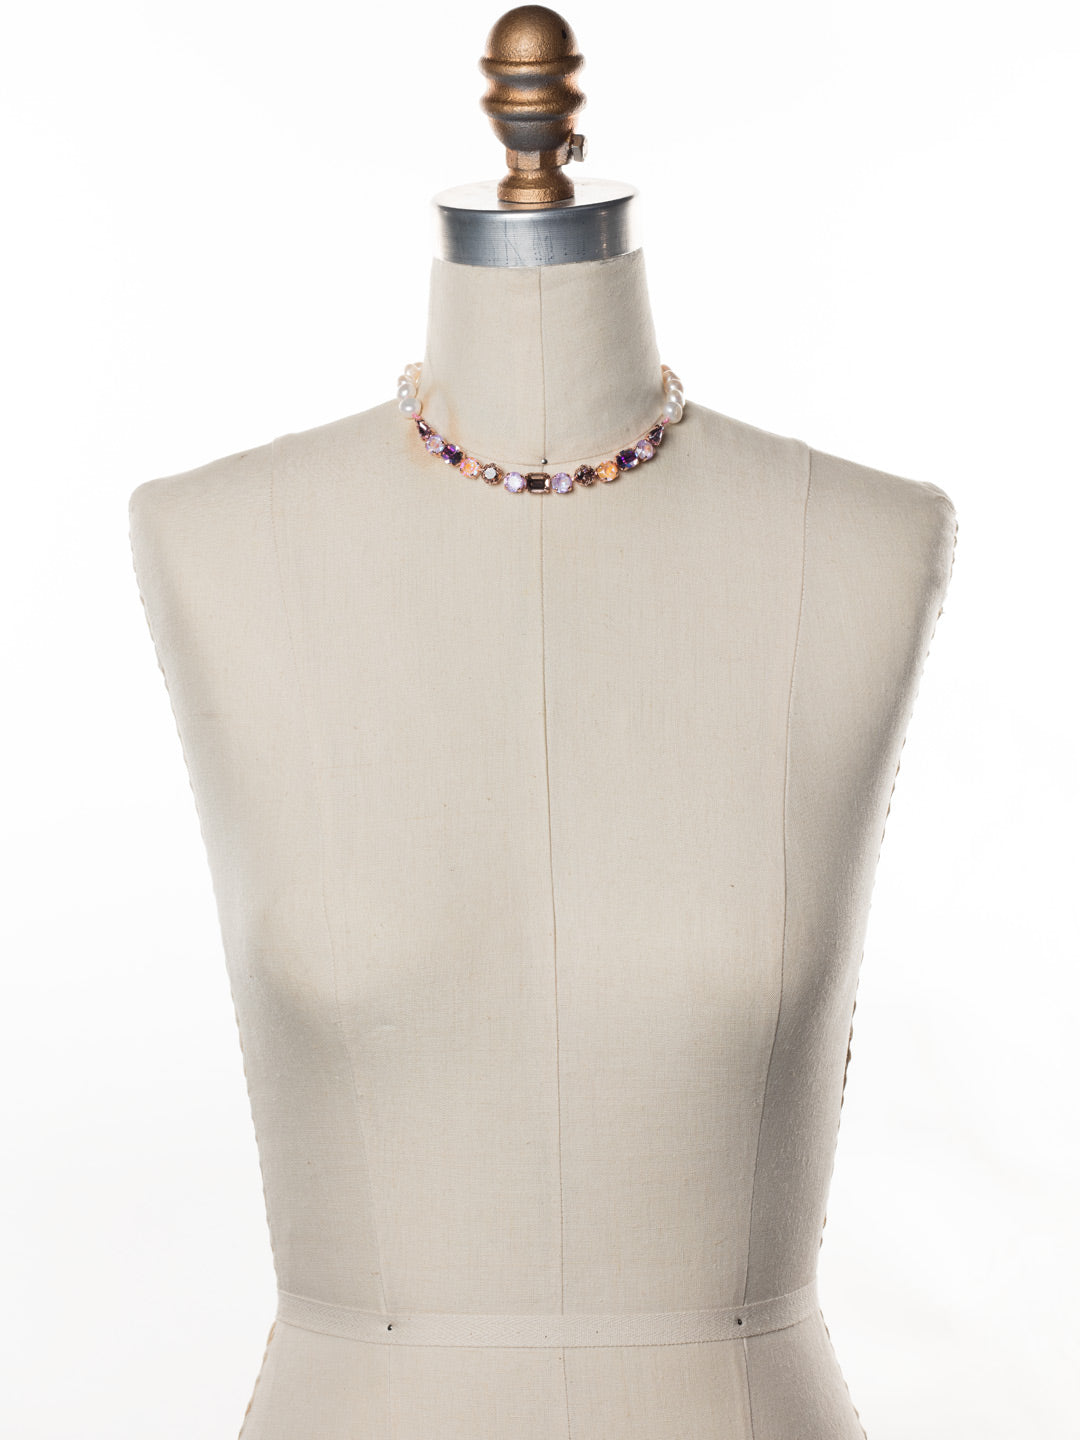 Cadenza Tennis Necklace - NEC14RGLVP